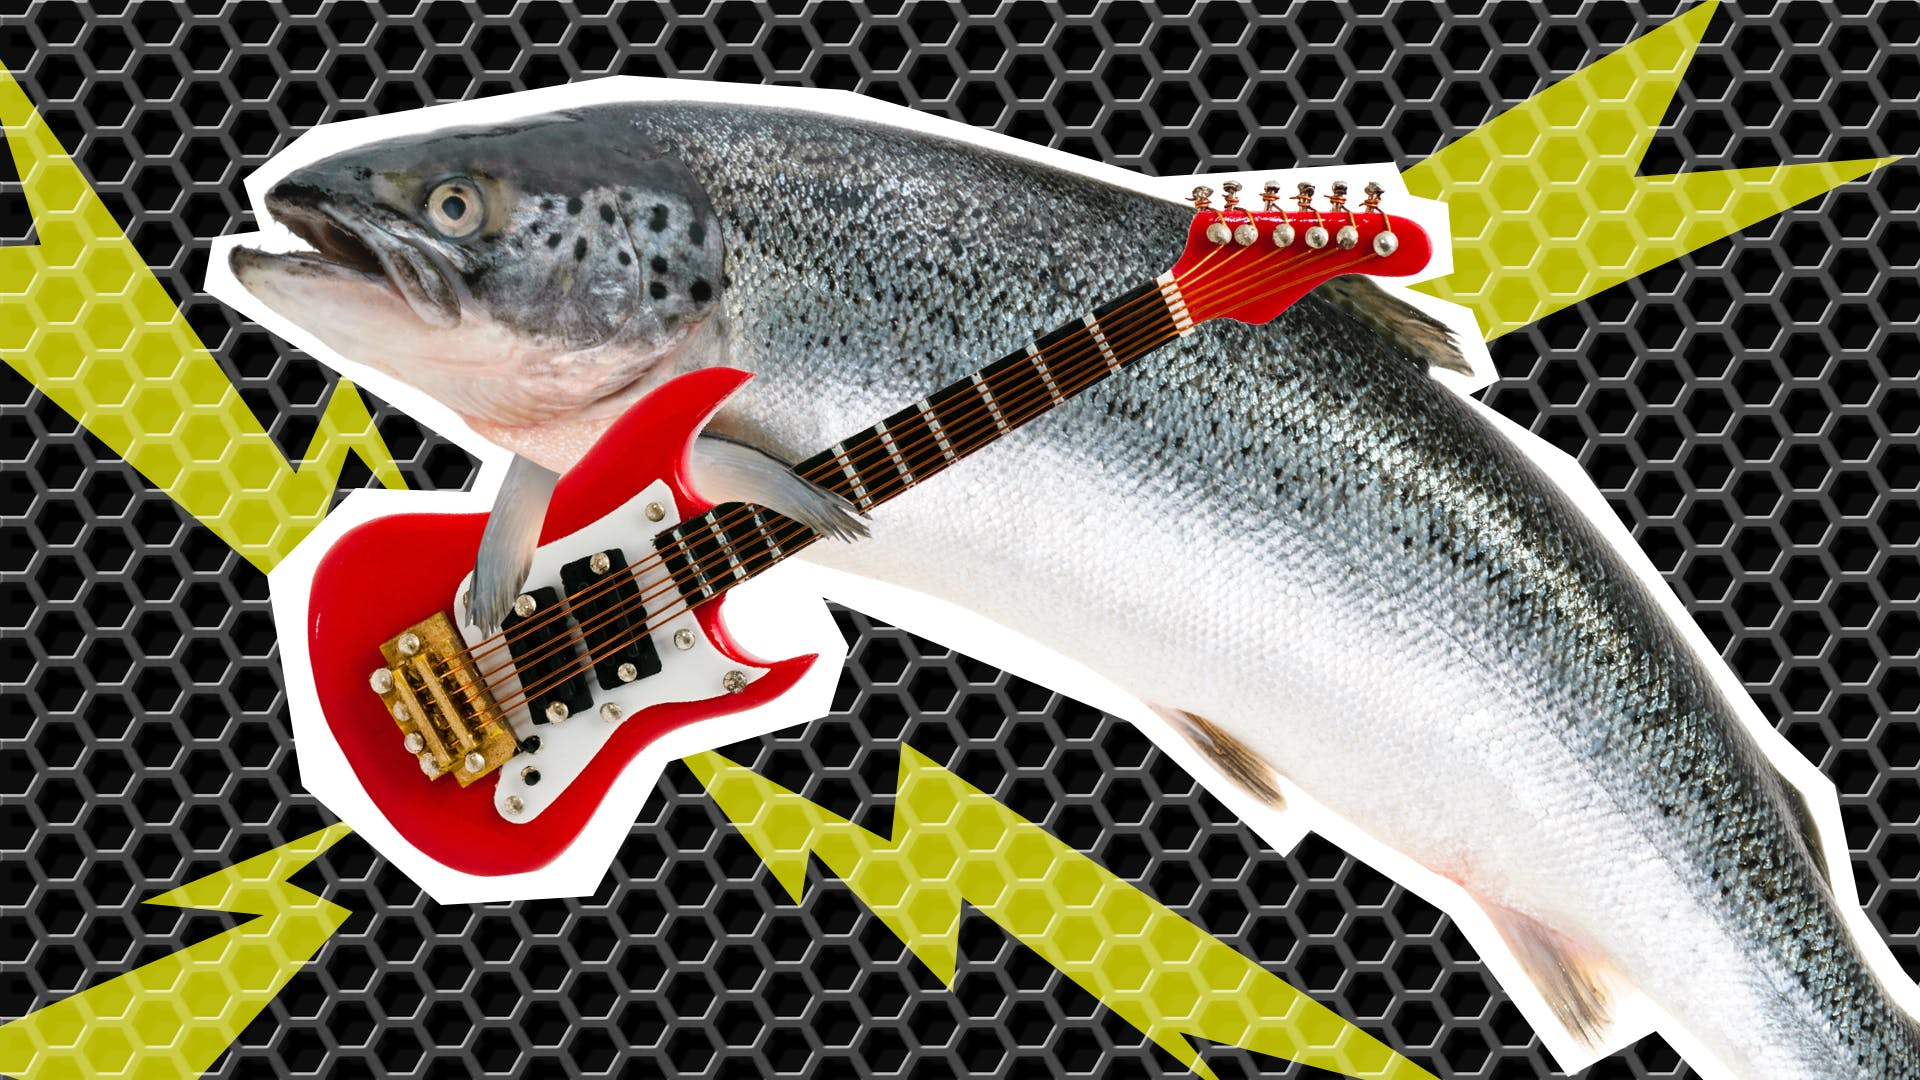 A fish playing a guitar. What's the difference between a guitar and a fish? | What's The Difference Between A Guitar And A Fish?